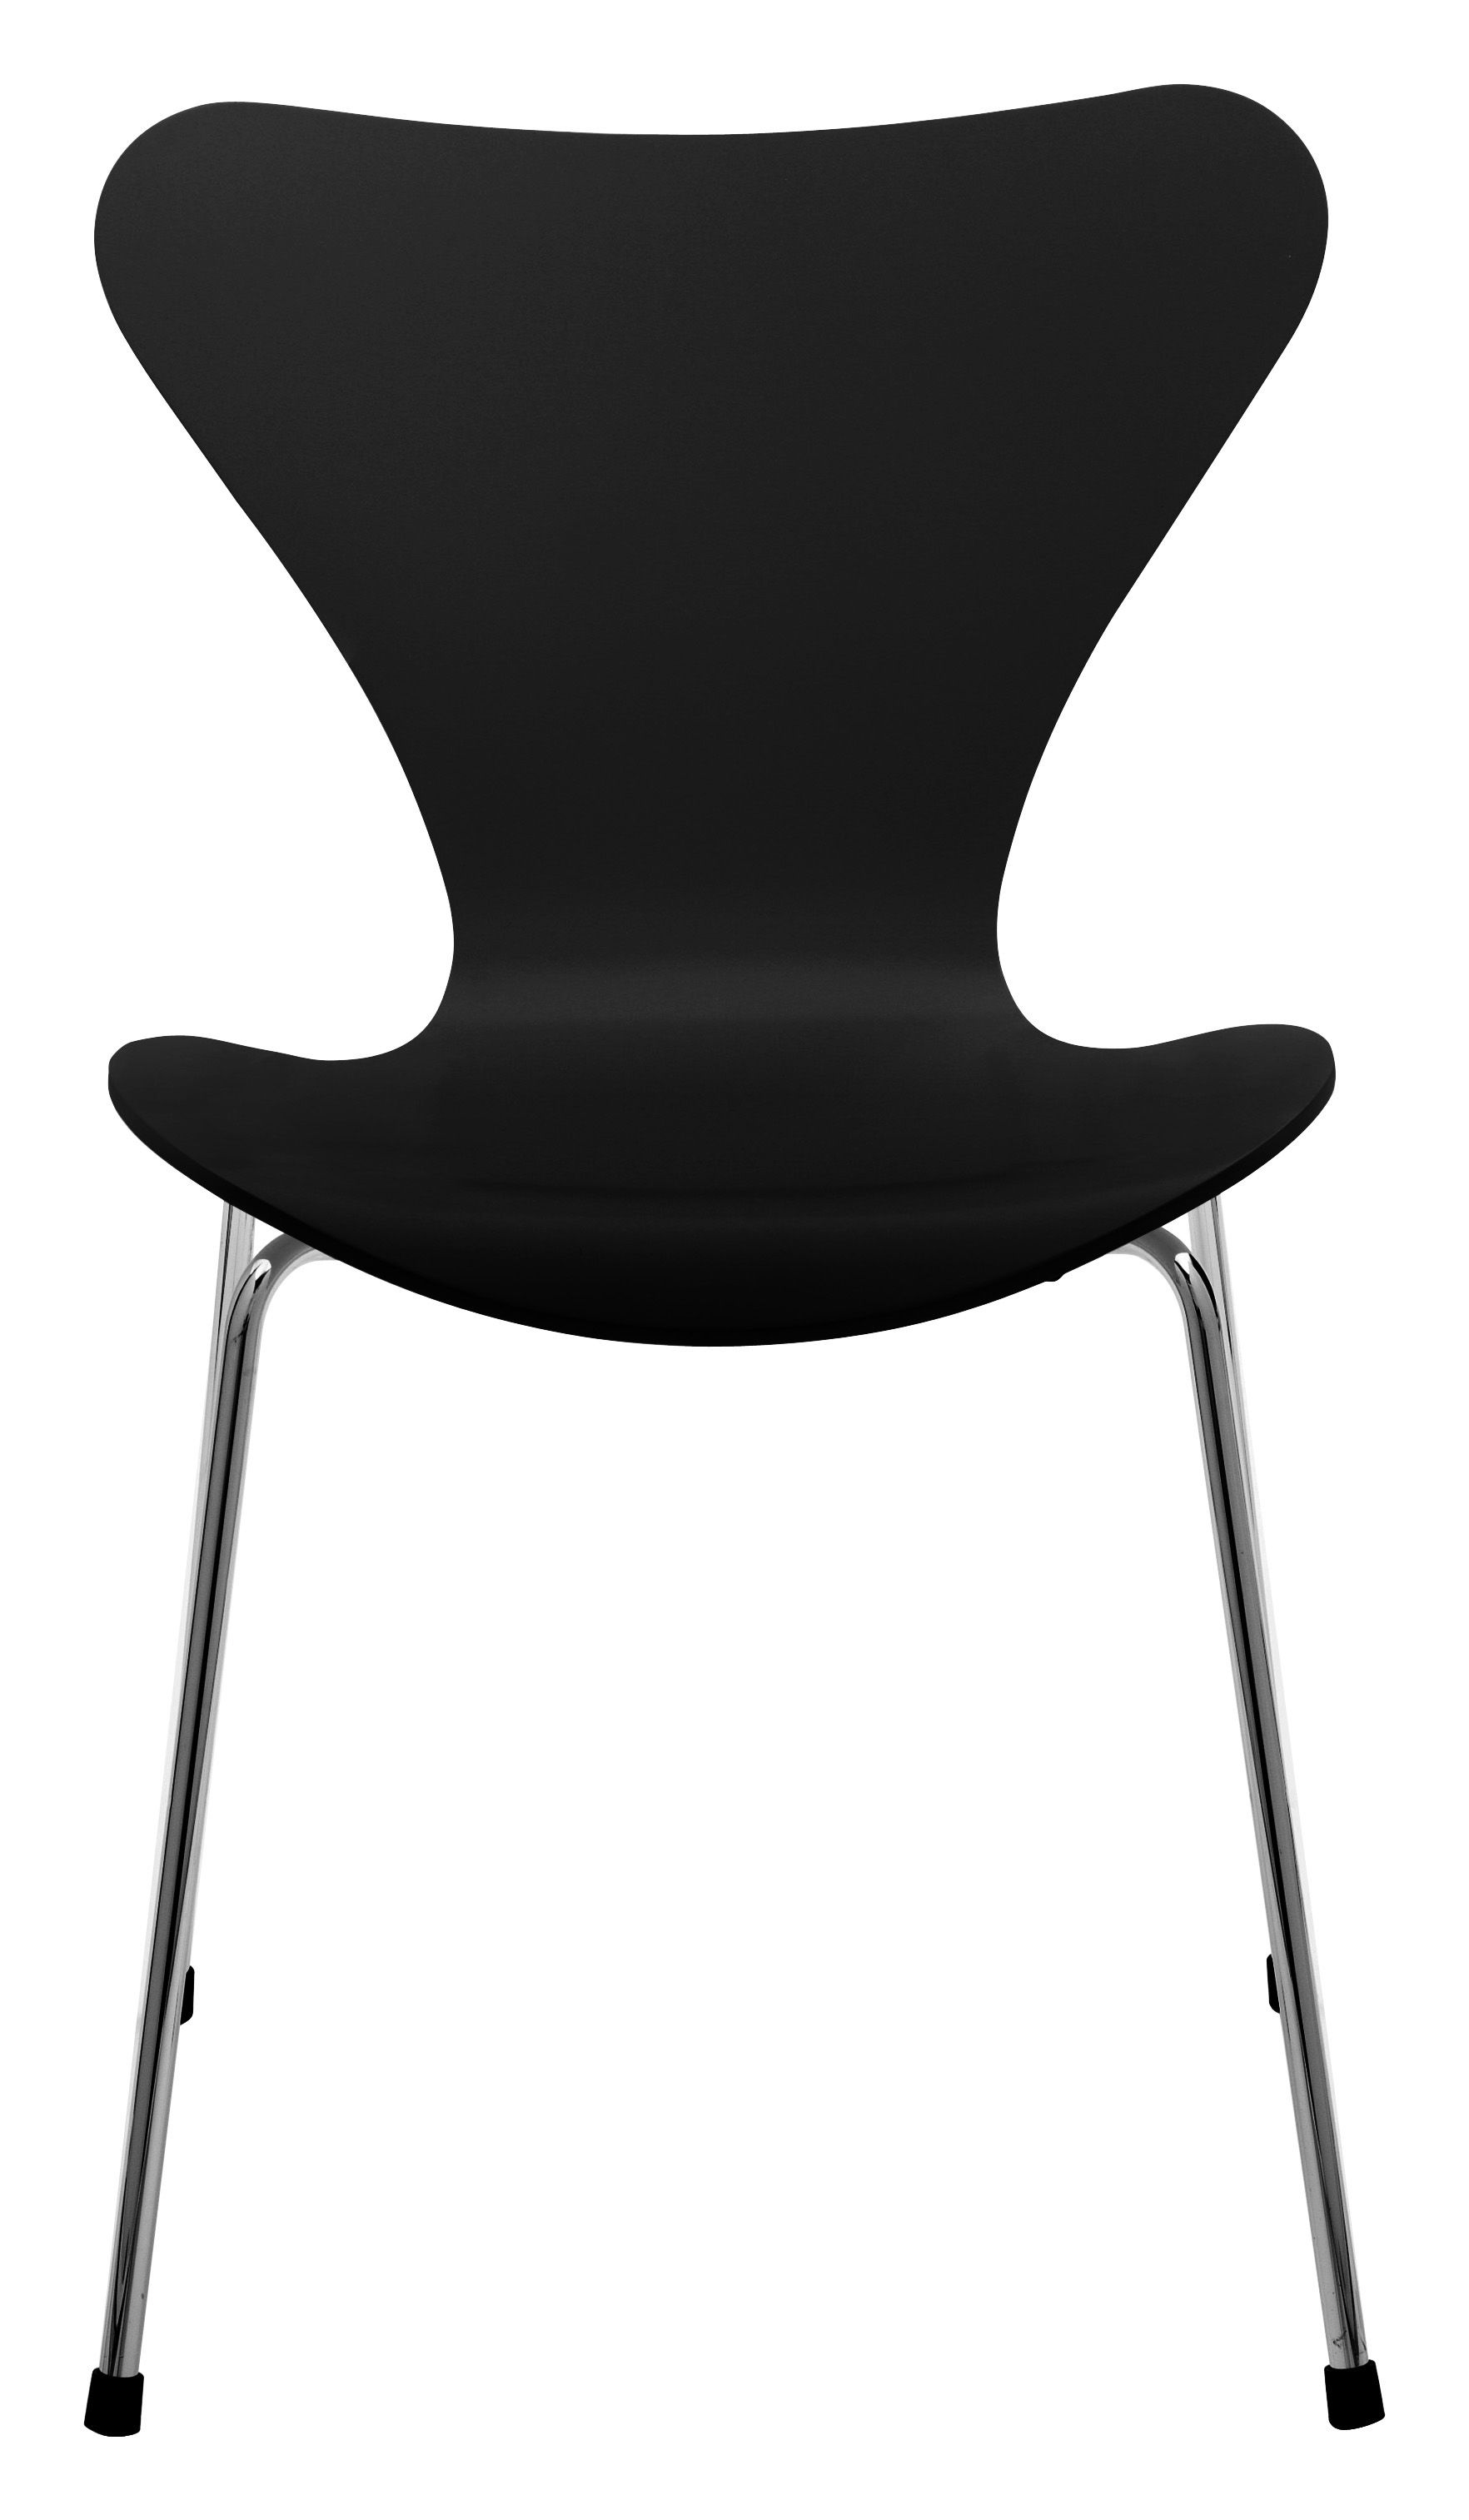 chaise empilable s rie 7 version h tre noir fritz hansen made in design. Black Bedroom Furniture Sets. Home Design Ideas